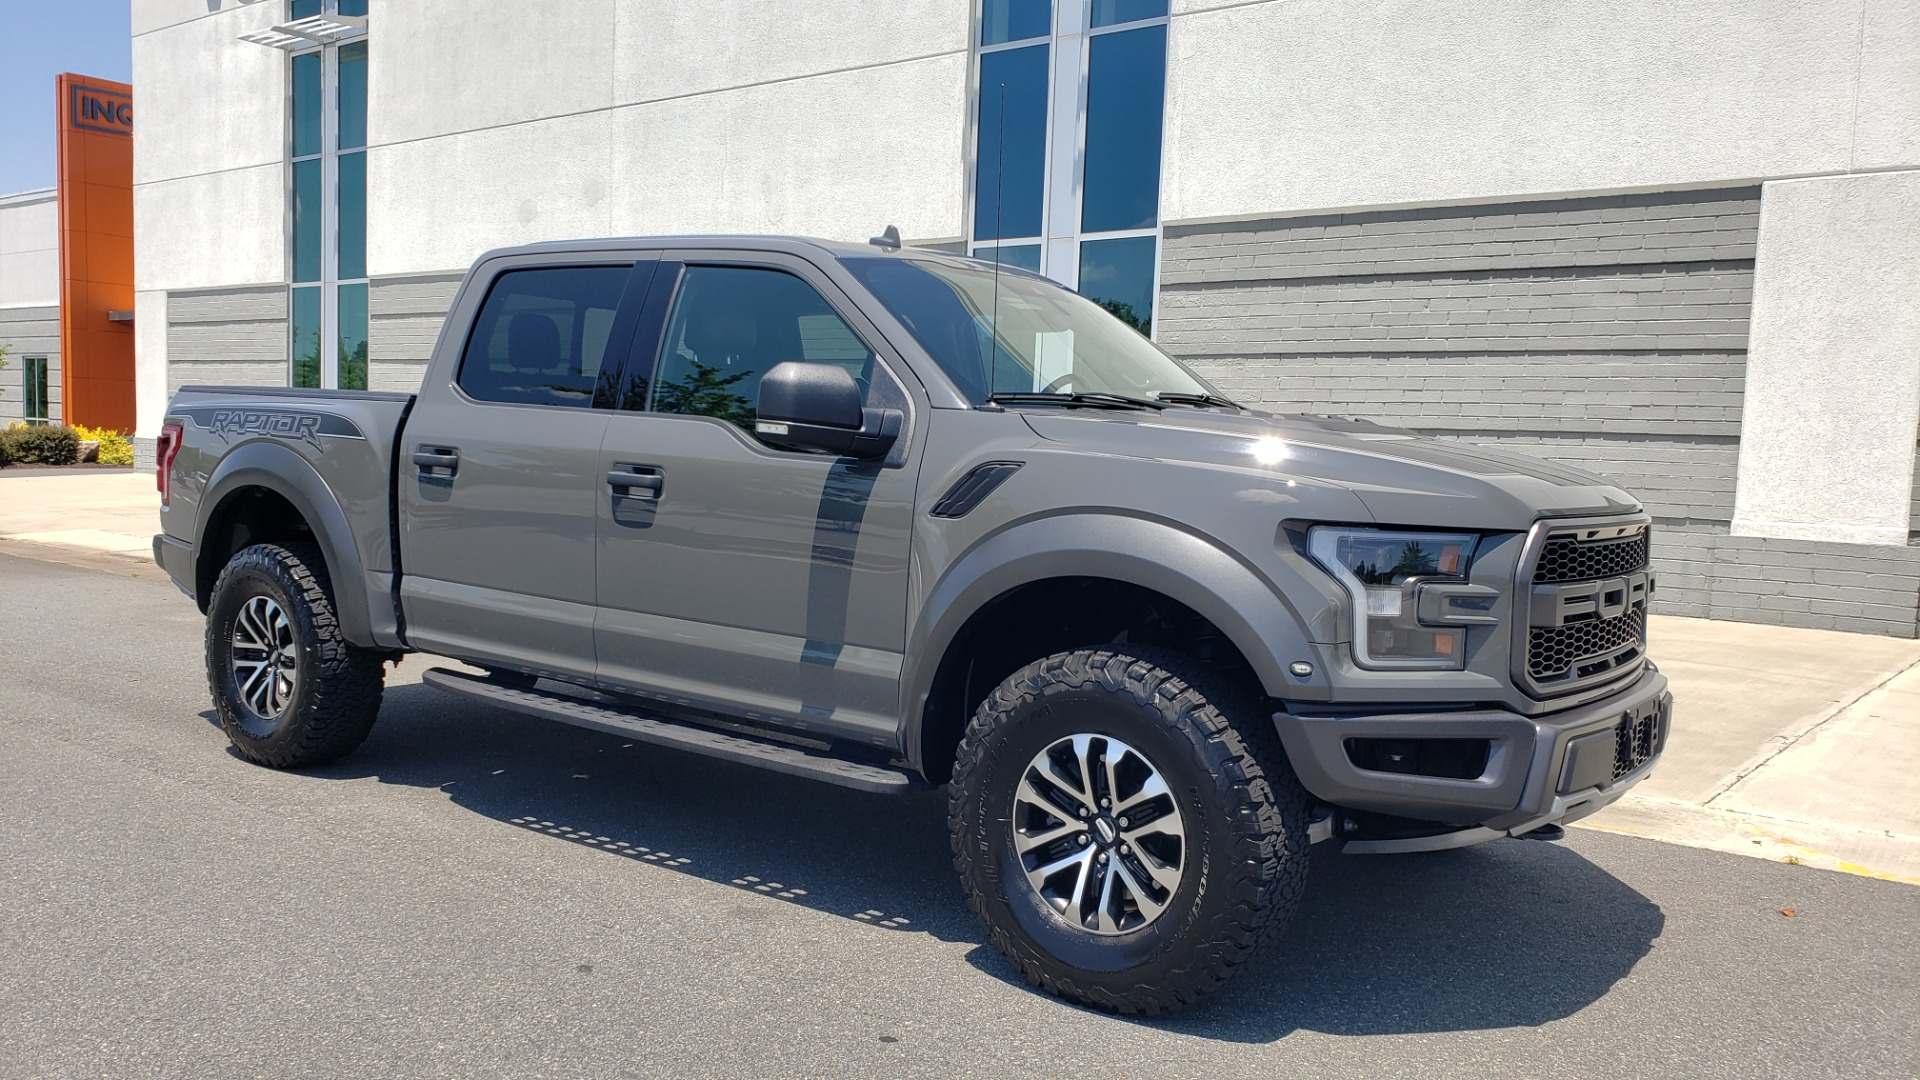 Used 2020 Ford F-150 RAPTOR 4X4 SUPERCREW / 3.5L ECOBOOST / 10-SPD AUTO / SUNROOF / REARVIEW for sale $82,500 at Formula Imports in Charlotte NC 28227 7